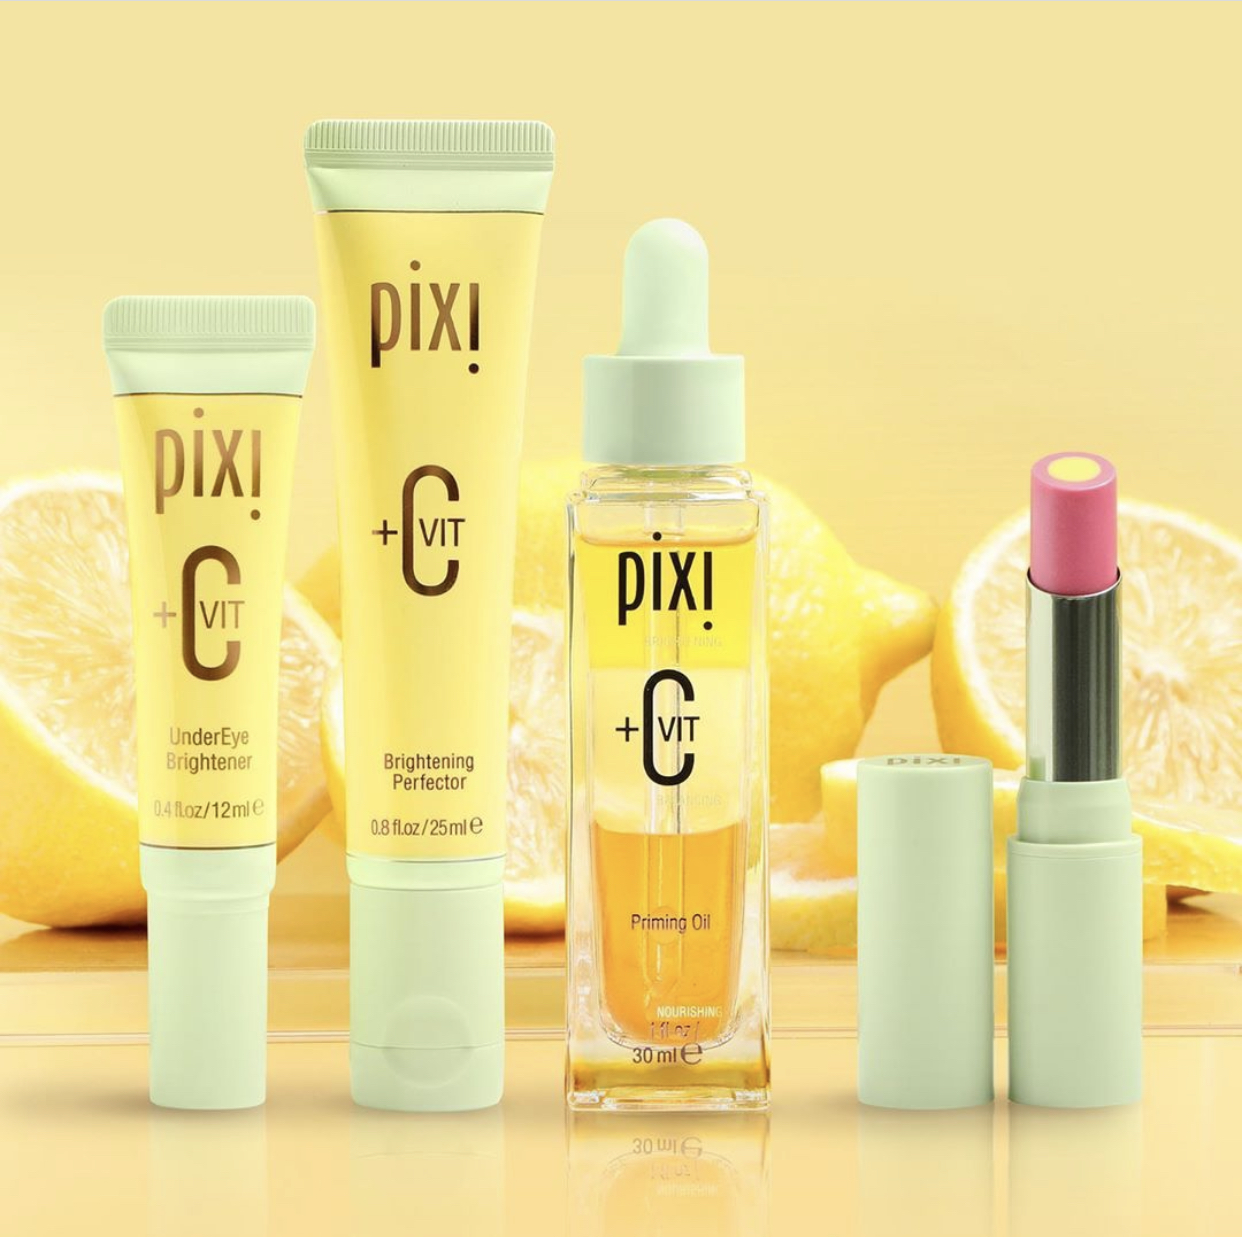 Pixi Vitamin C Collection